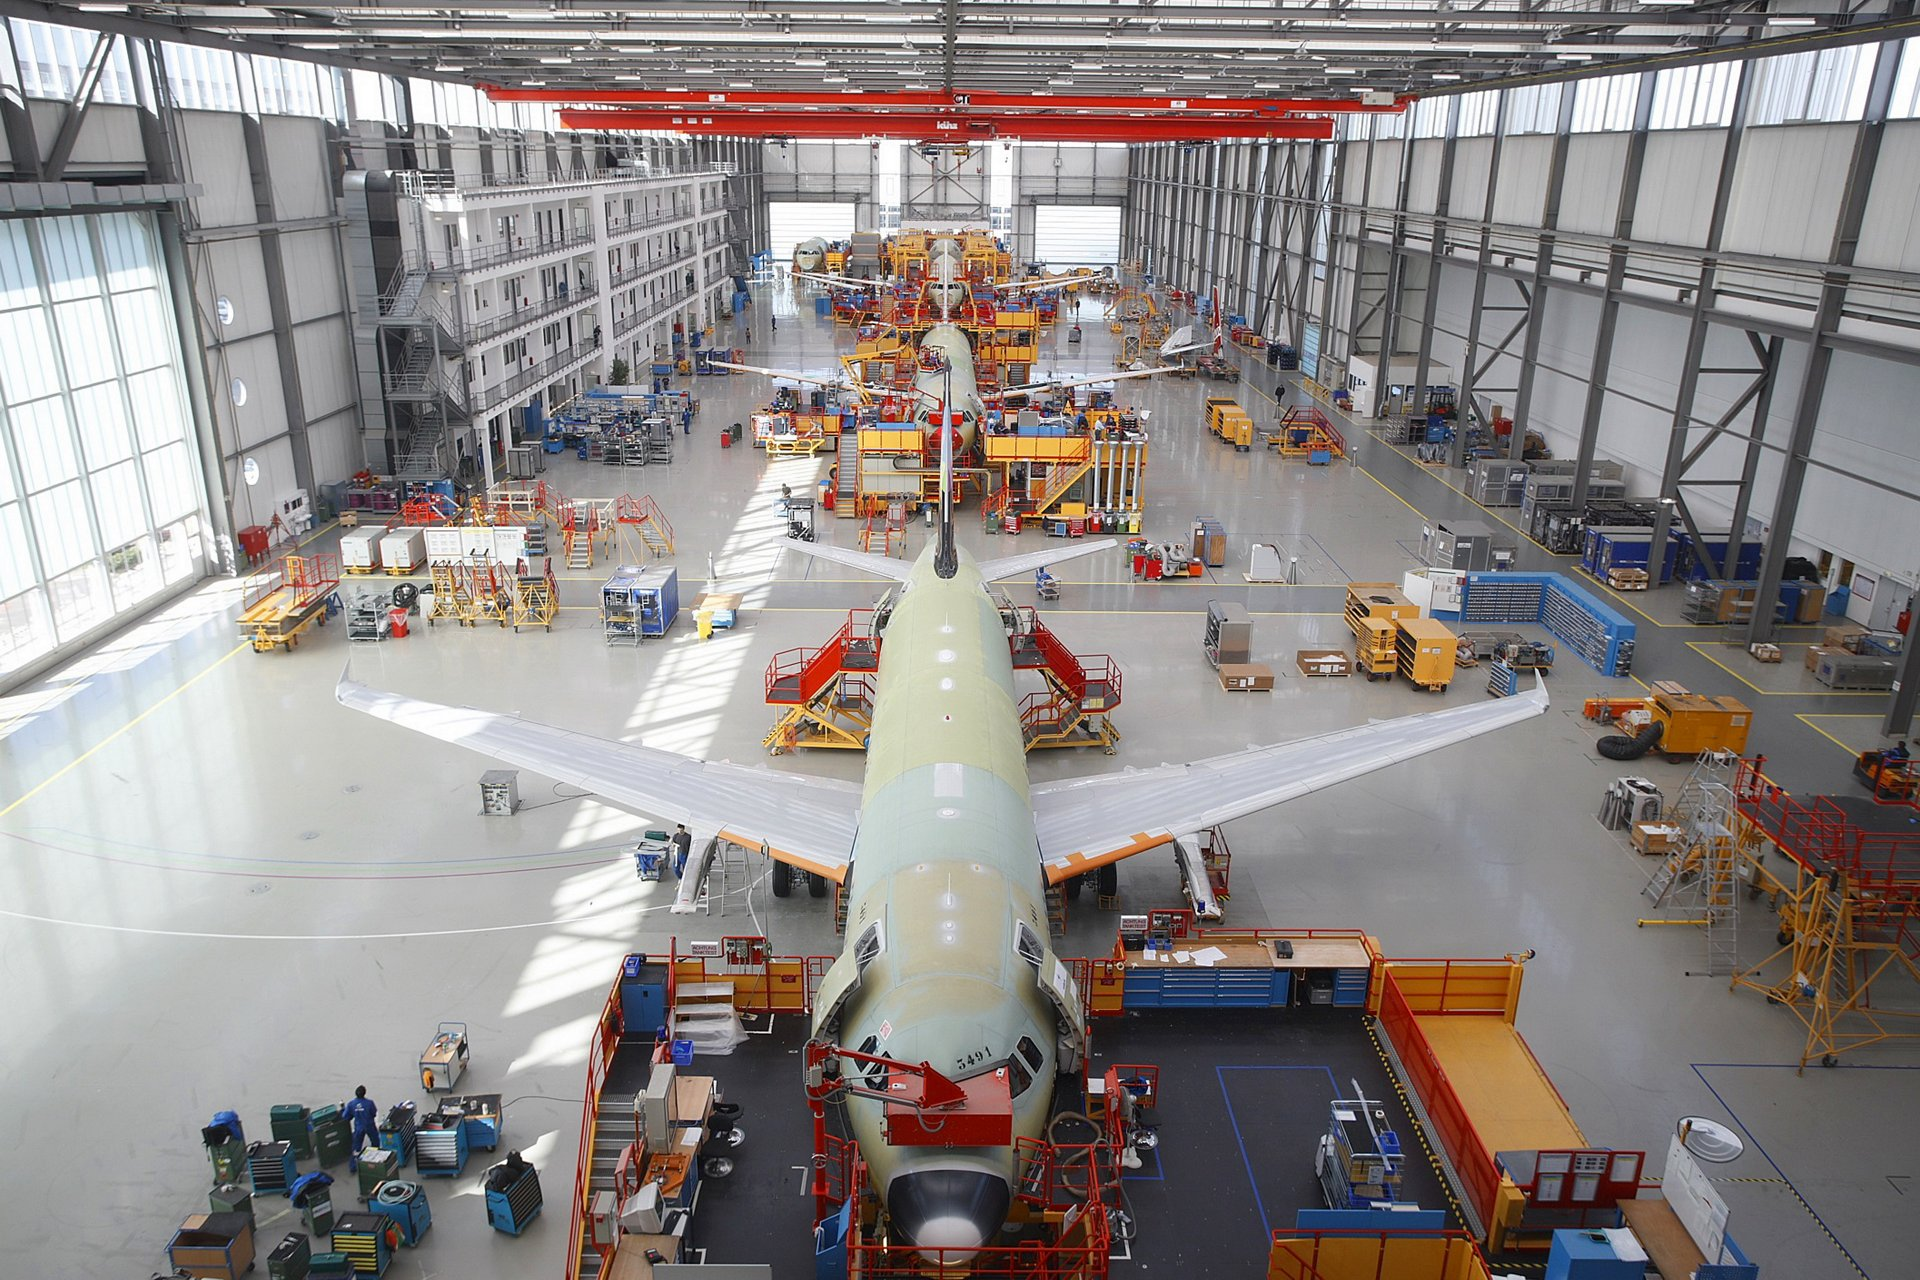 See additional details on Airbus commercial aircraft production